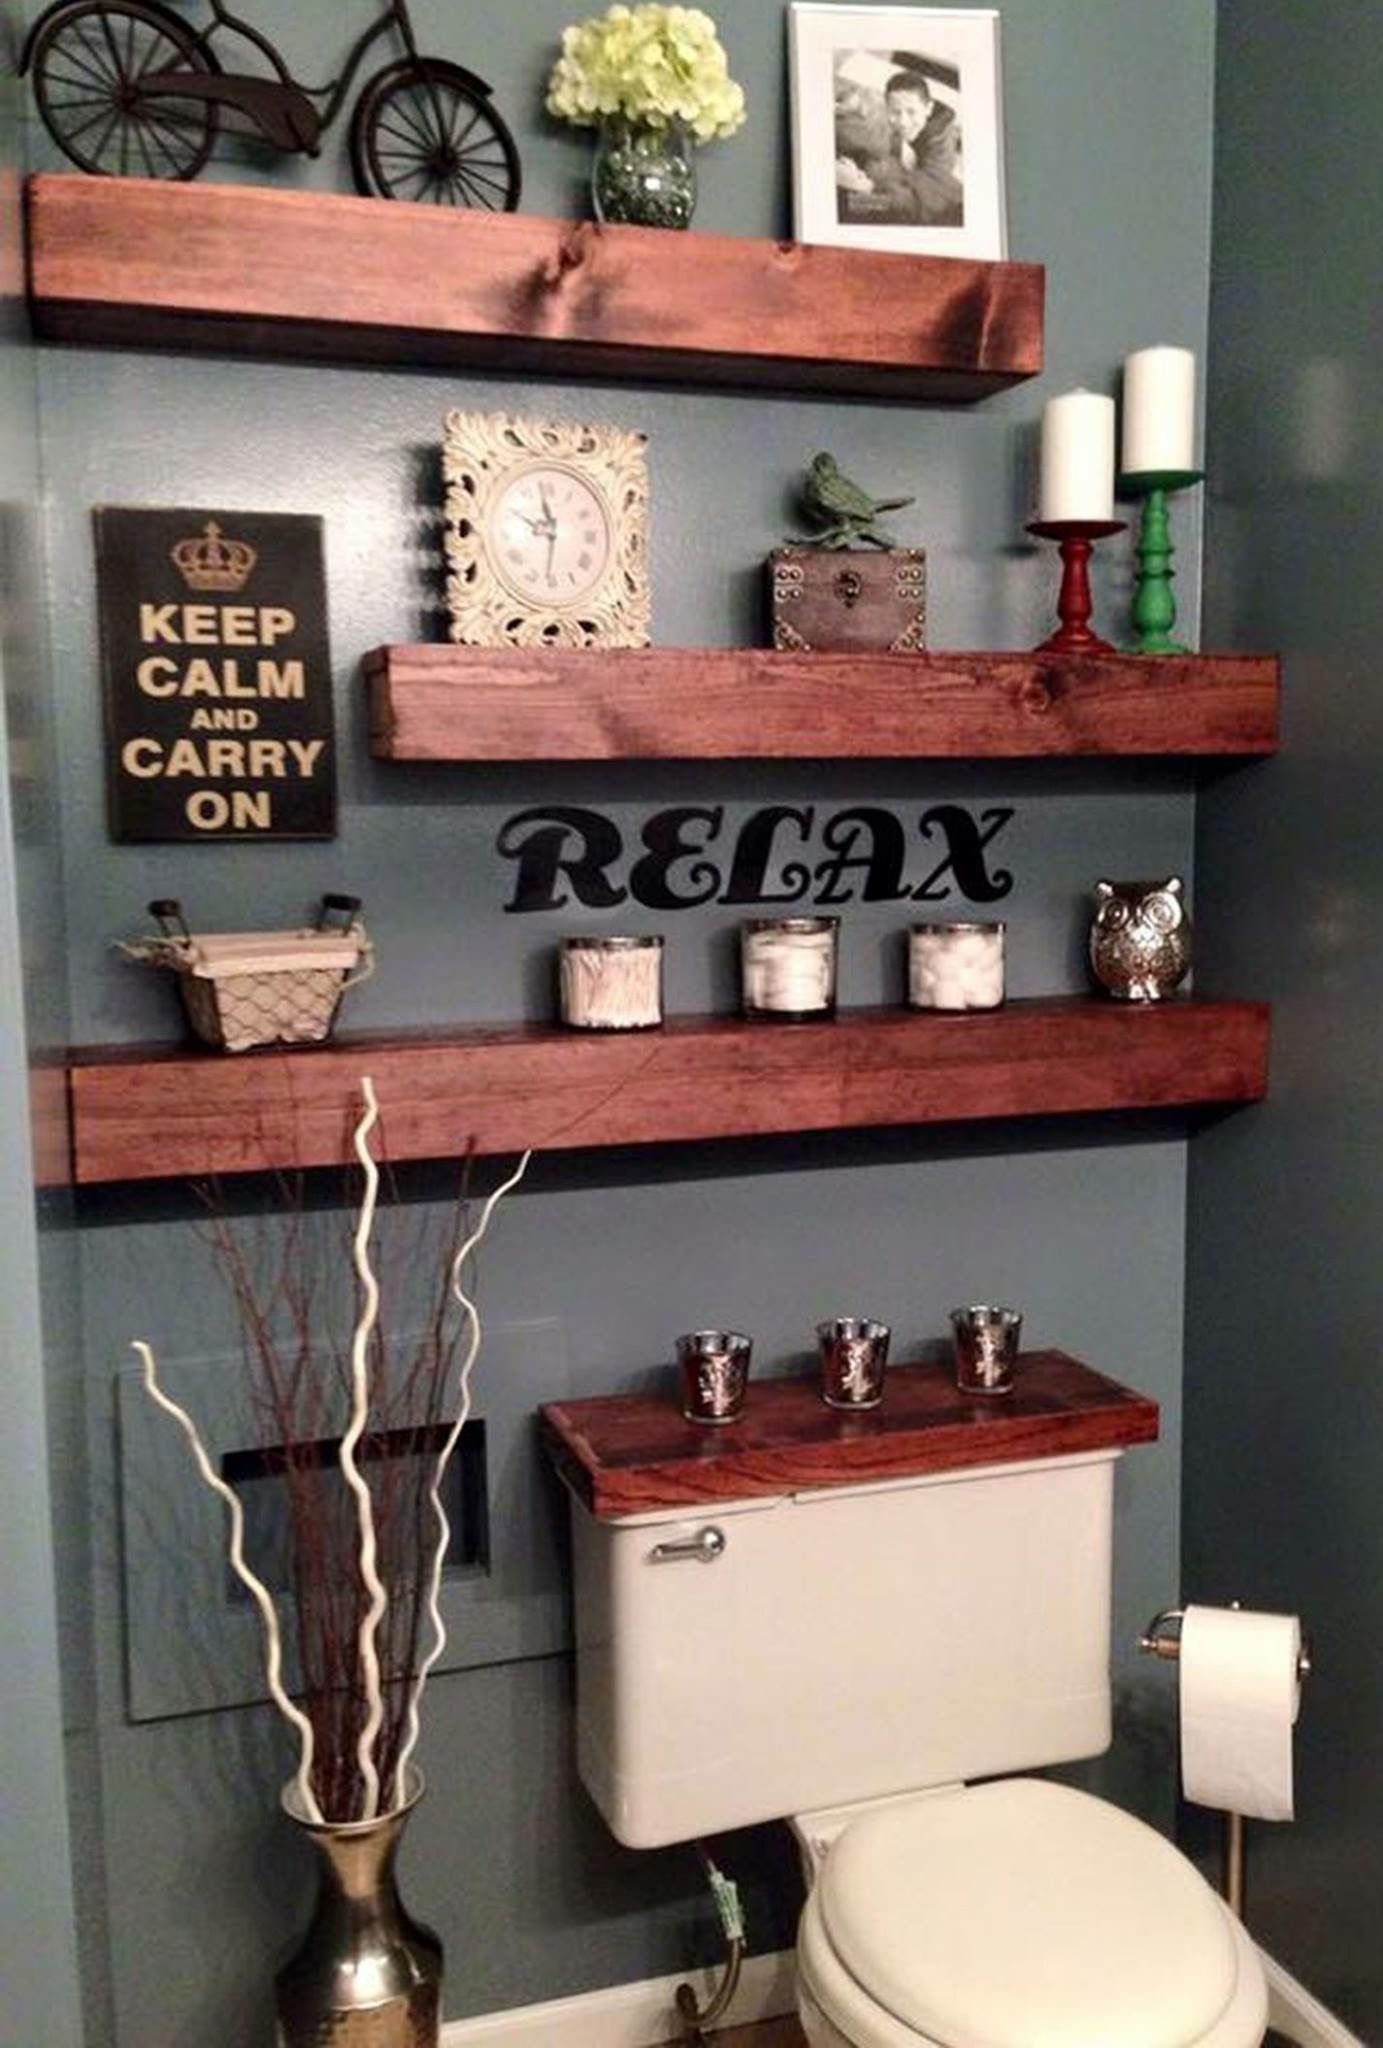 just 2 darker shelves no wooden tank lid 22 ways to boost and refresh your bathroom by adding wood accents